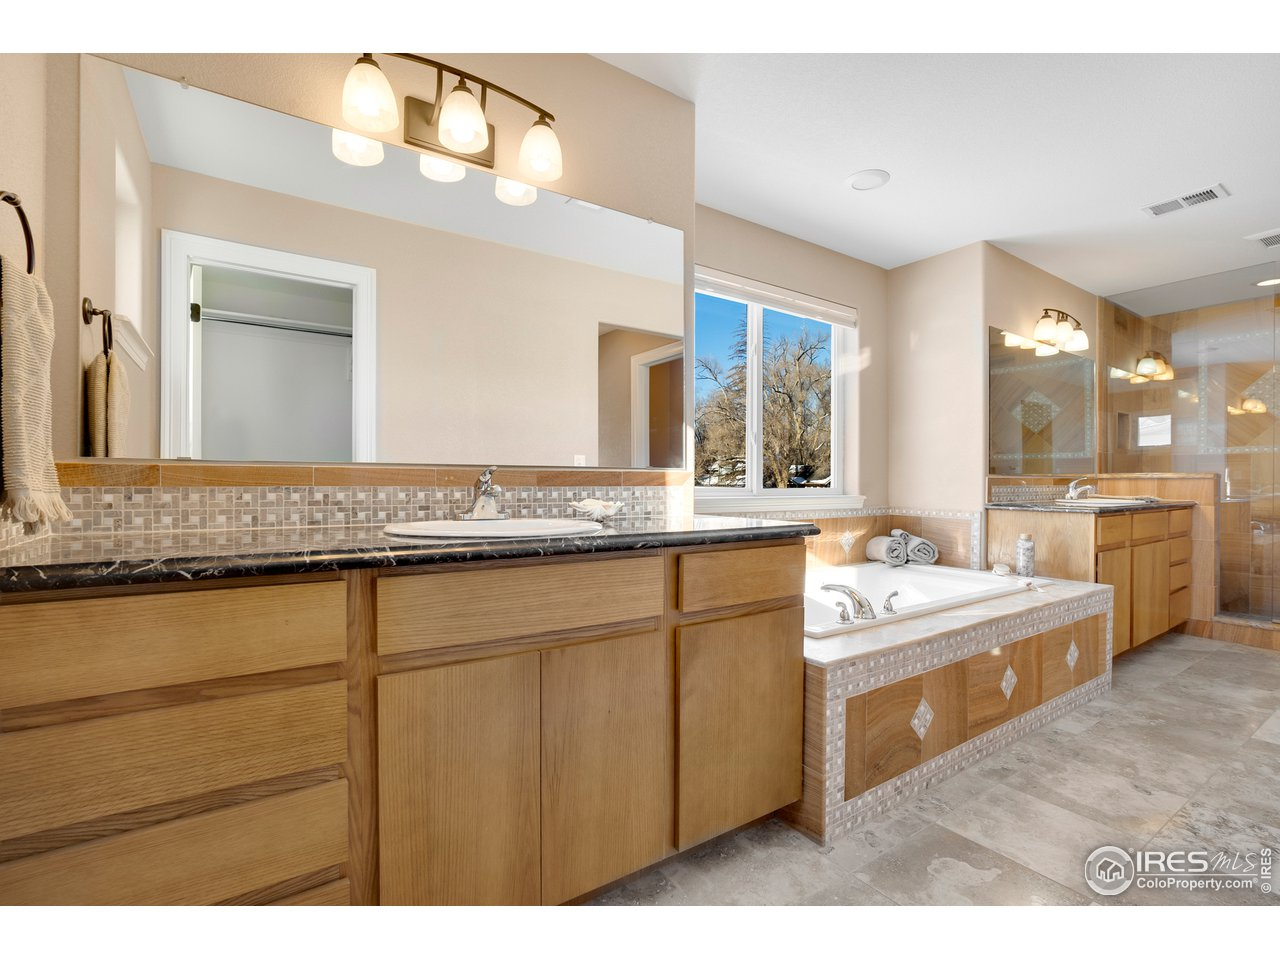 Double sinks and separate closets